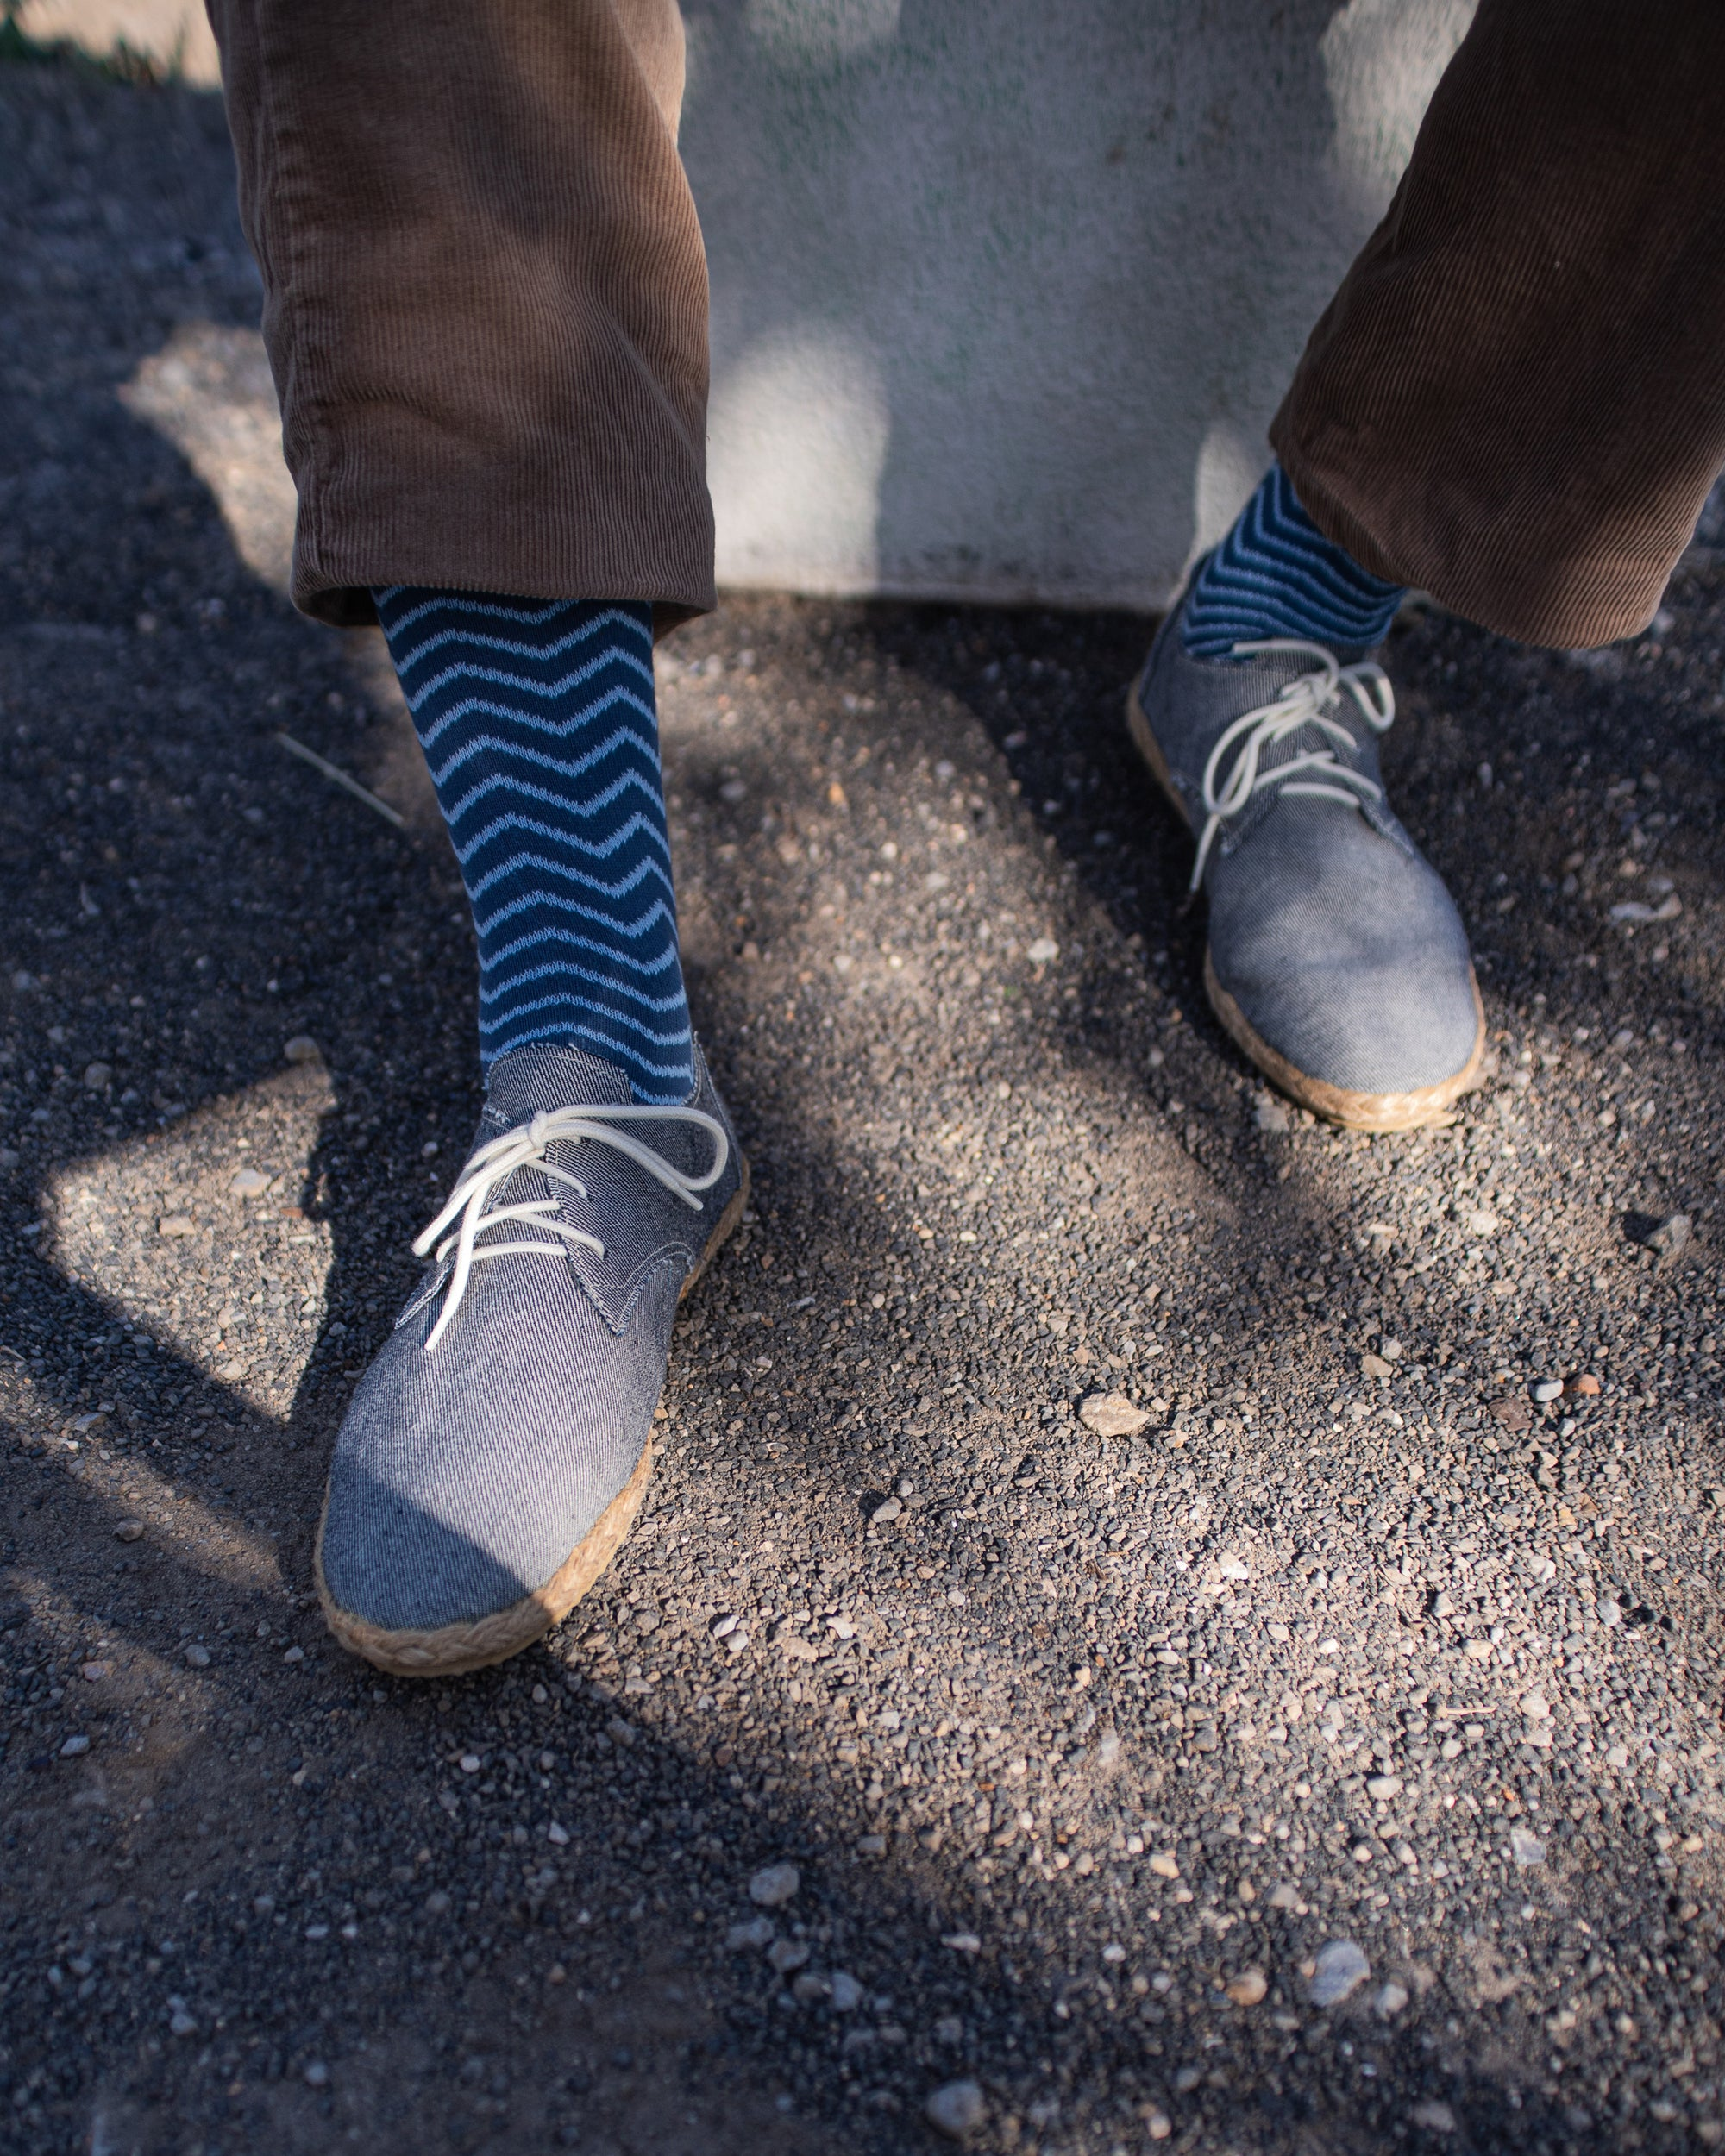 Classic Organic Socks | Socks | Dilly Socks | [product_tag] - Fair Bazaar Ethical Living